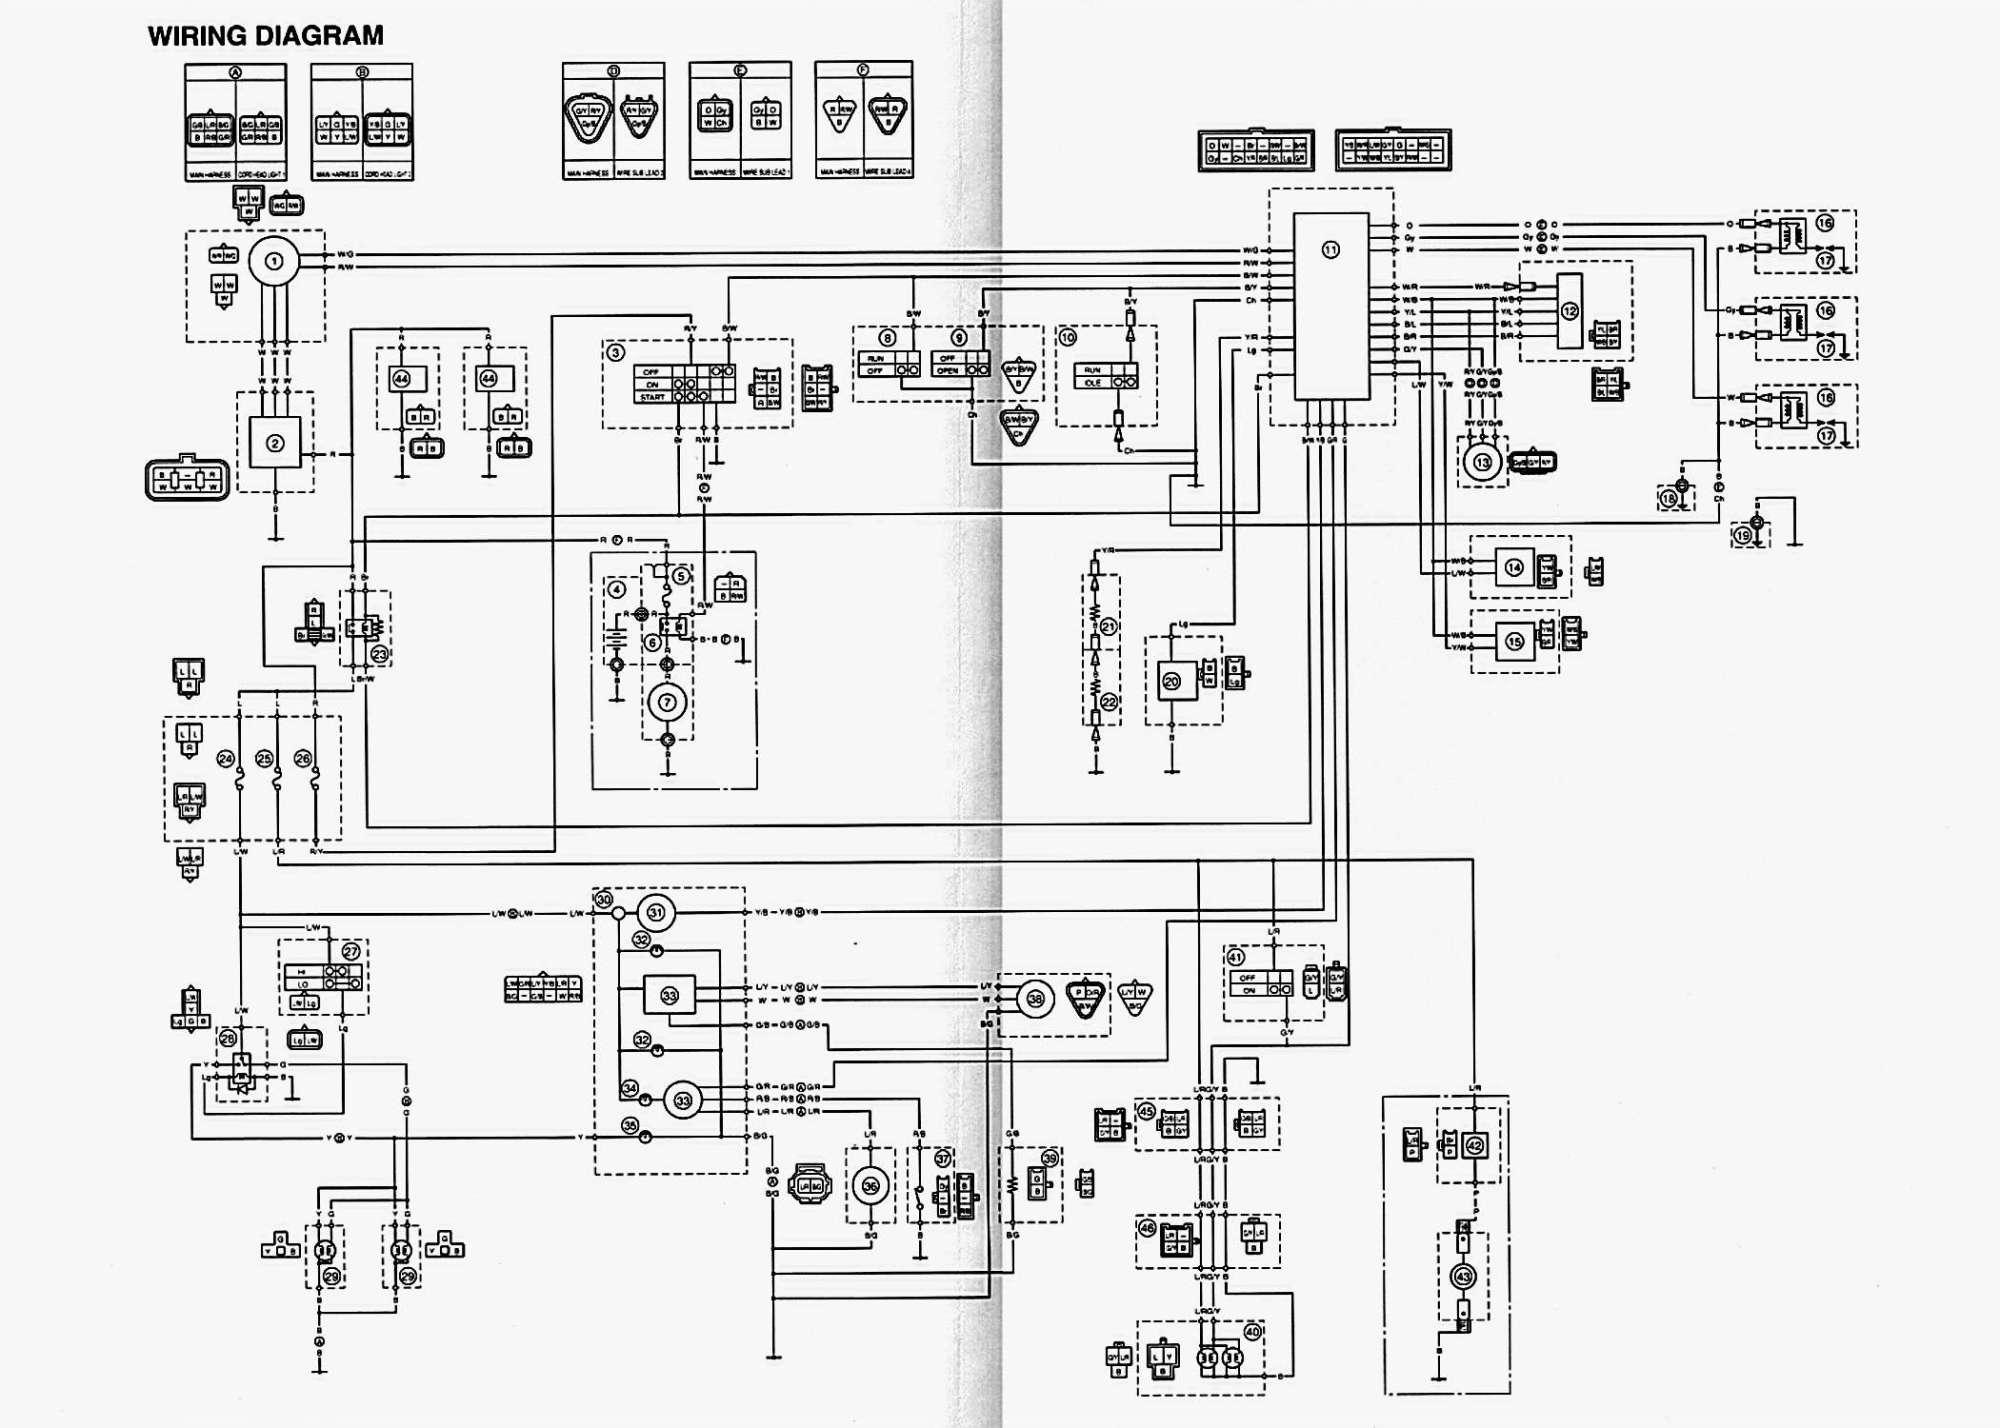 hight resolution of viper electrical schematic and legend pages on how to bleed the cooling system